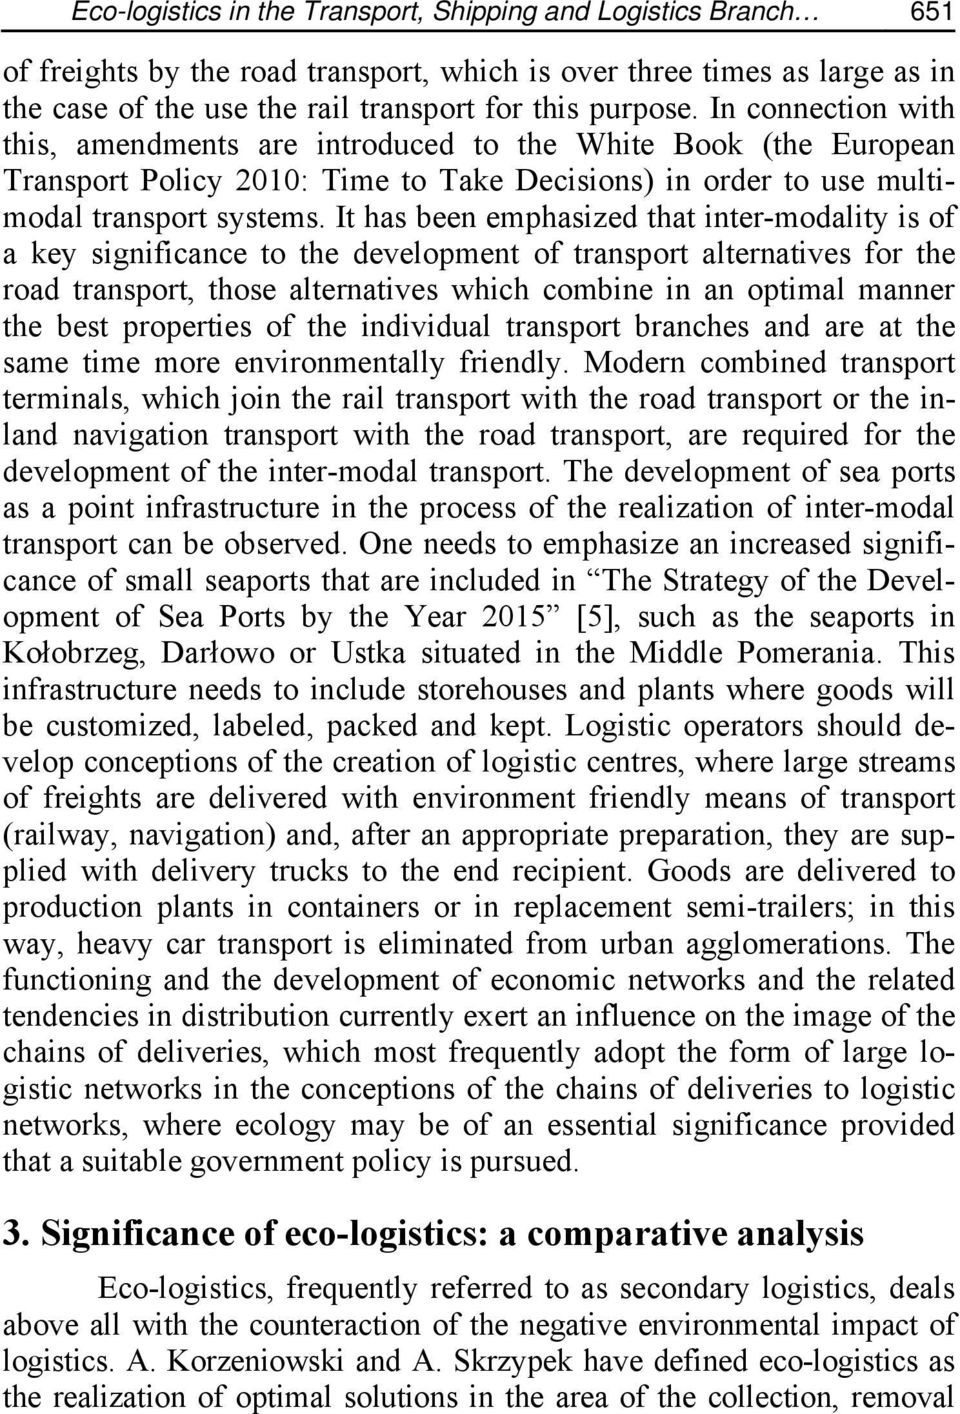 It has been emphasized that inter-modality is of a key significance to the development of transport alternatives for the road transport, those alternatives which combine in an optimal manner the best